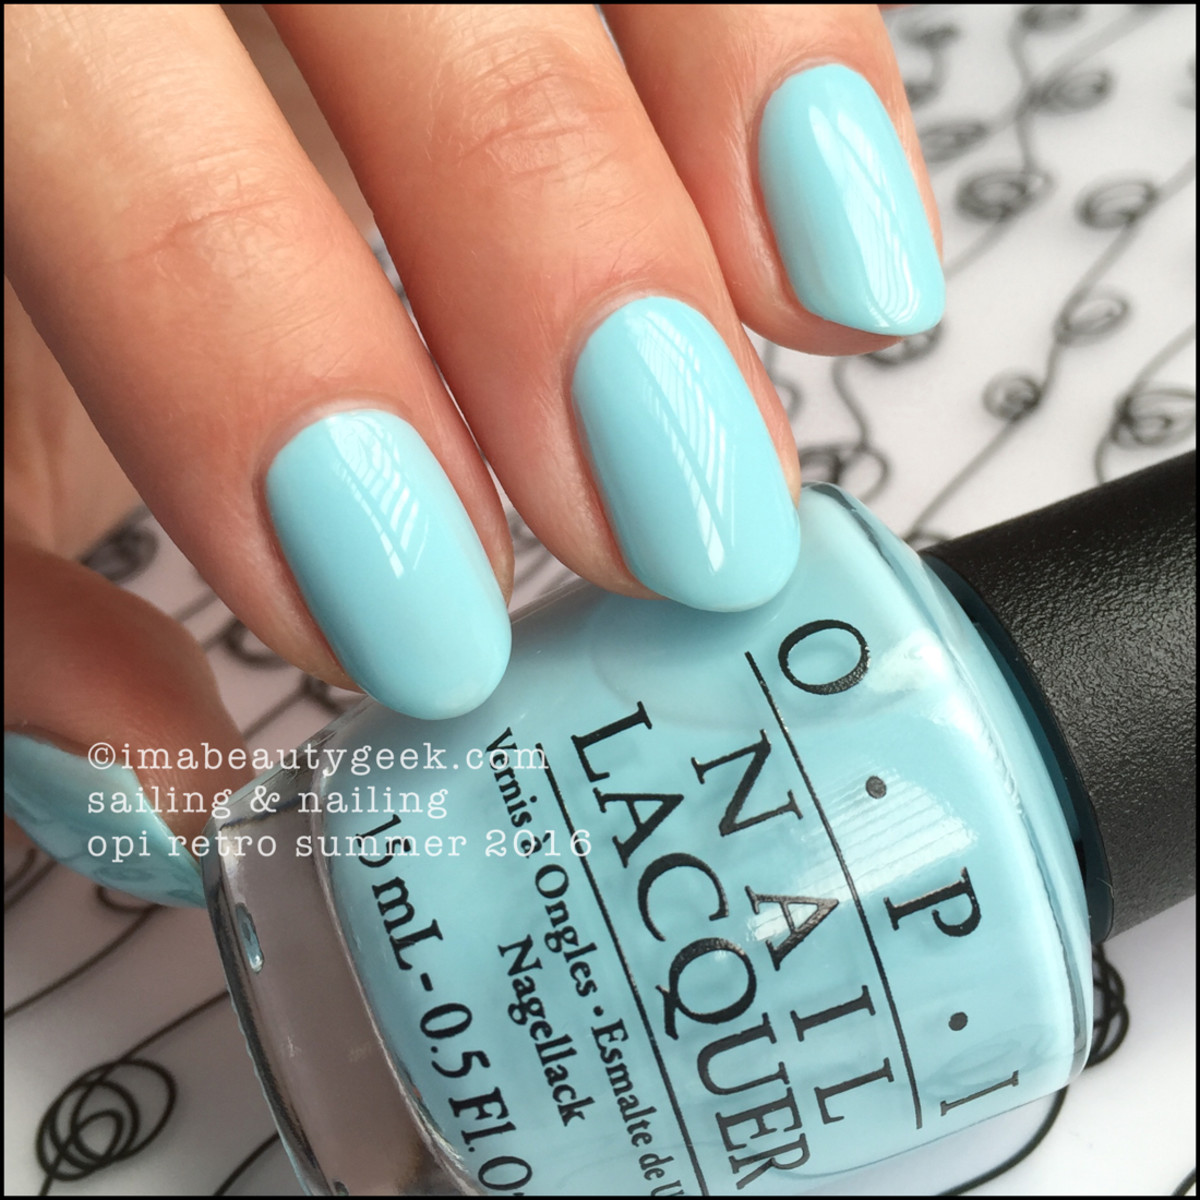 OPI Sailing and Nailing_OPI Retro Summer 2016 Swatches Review